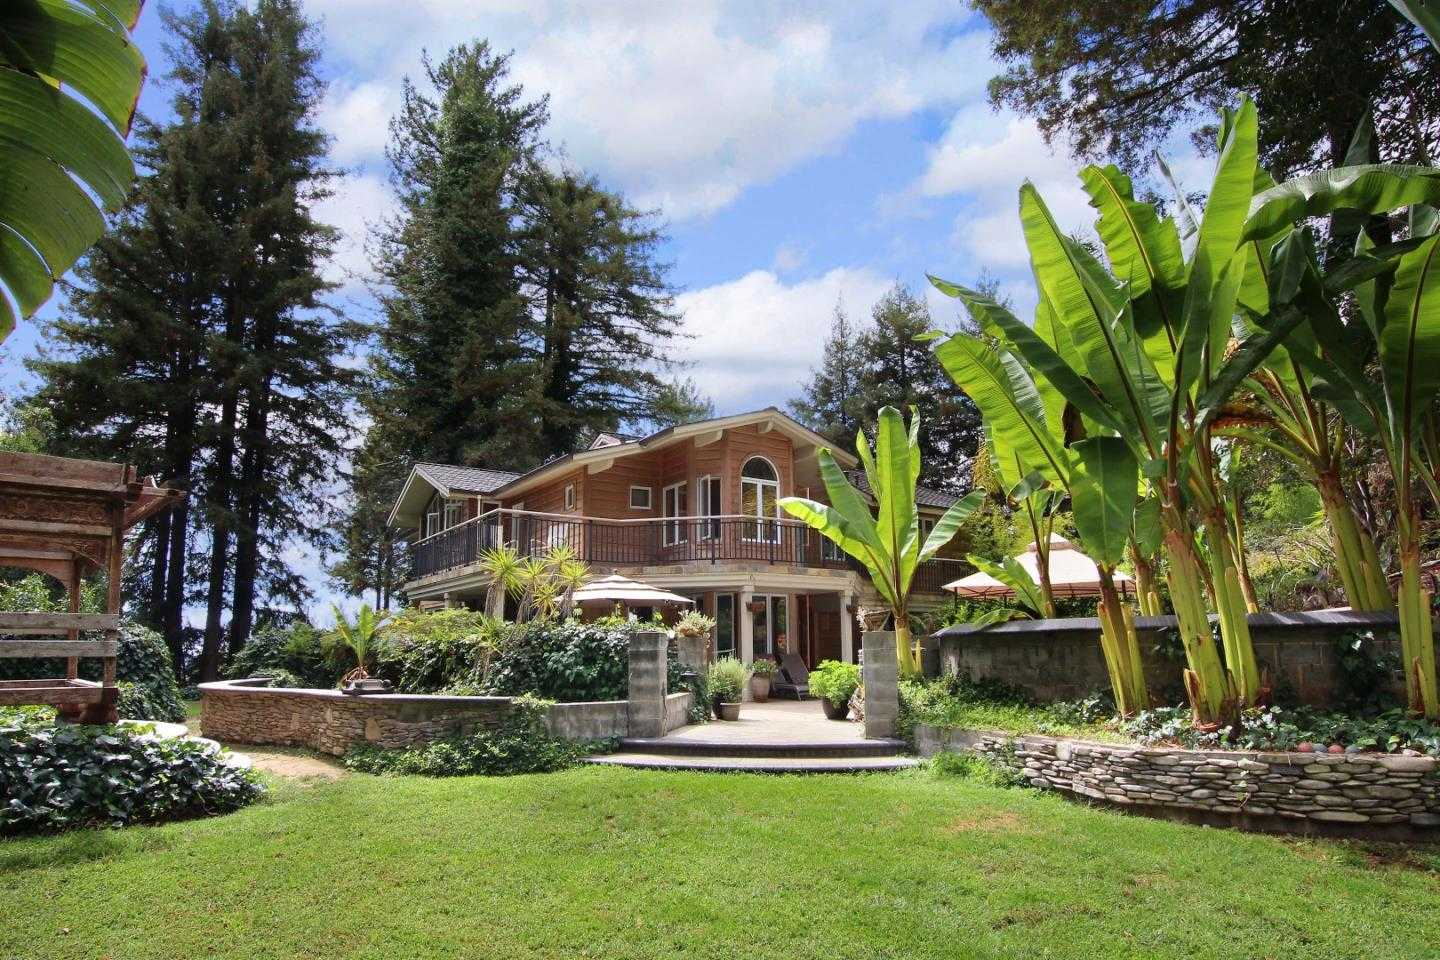 $1,390,000 - 4Br/4Ba -  for Sale in Soquel